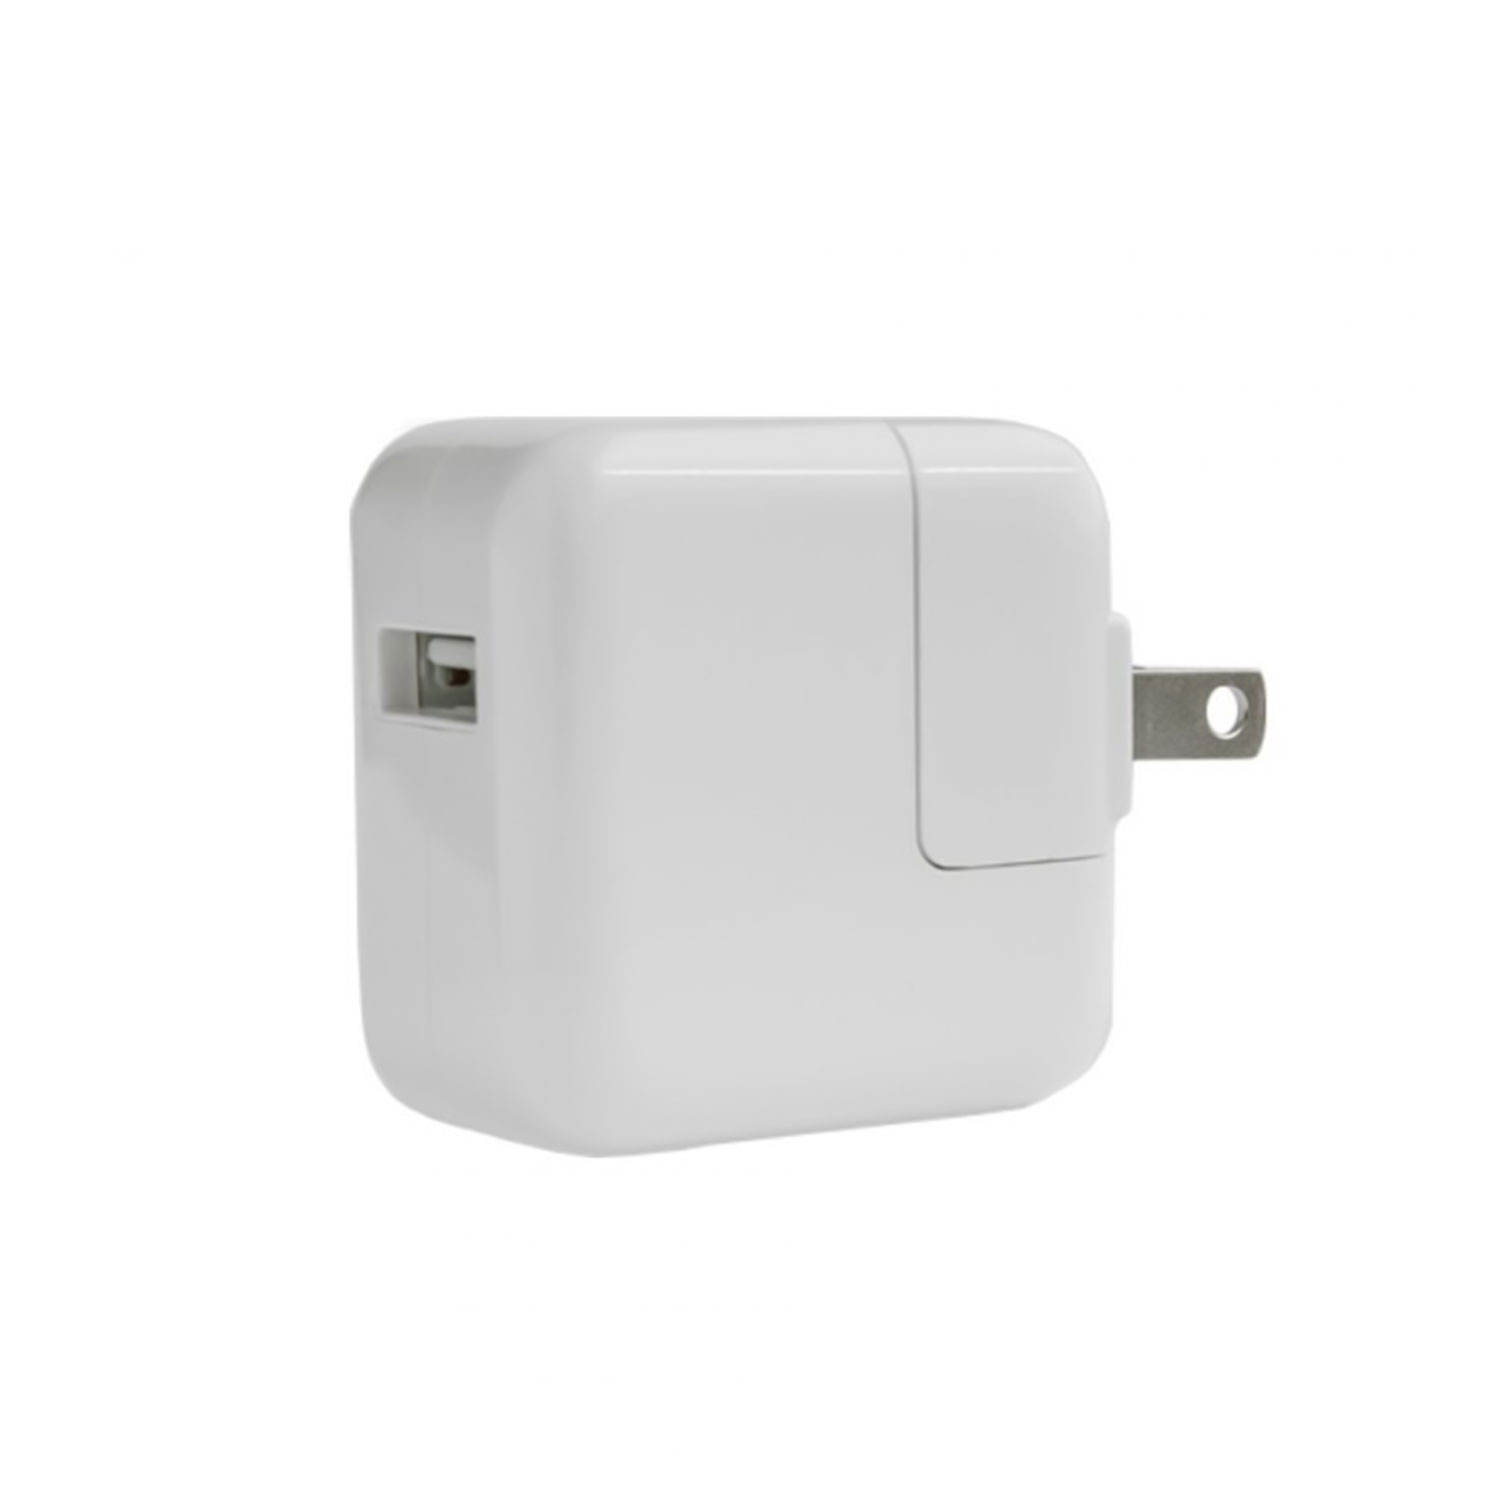 Original 12w power adapter 5 6 7 8 x 11 s g plus usb wall charger for iphone plug md836 A1401 travel charging for apple tablet